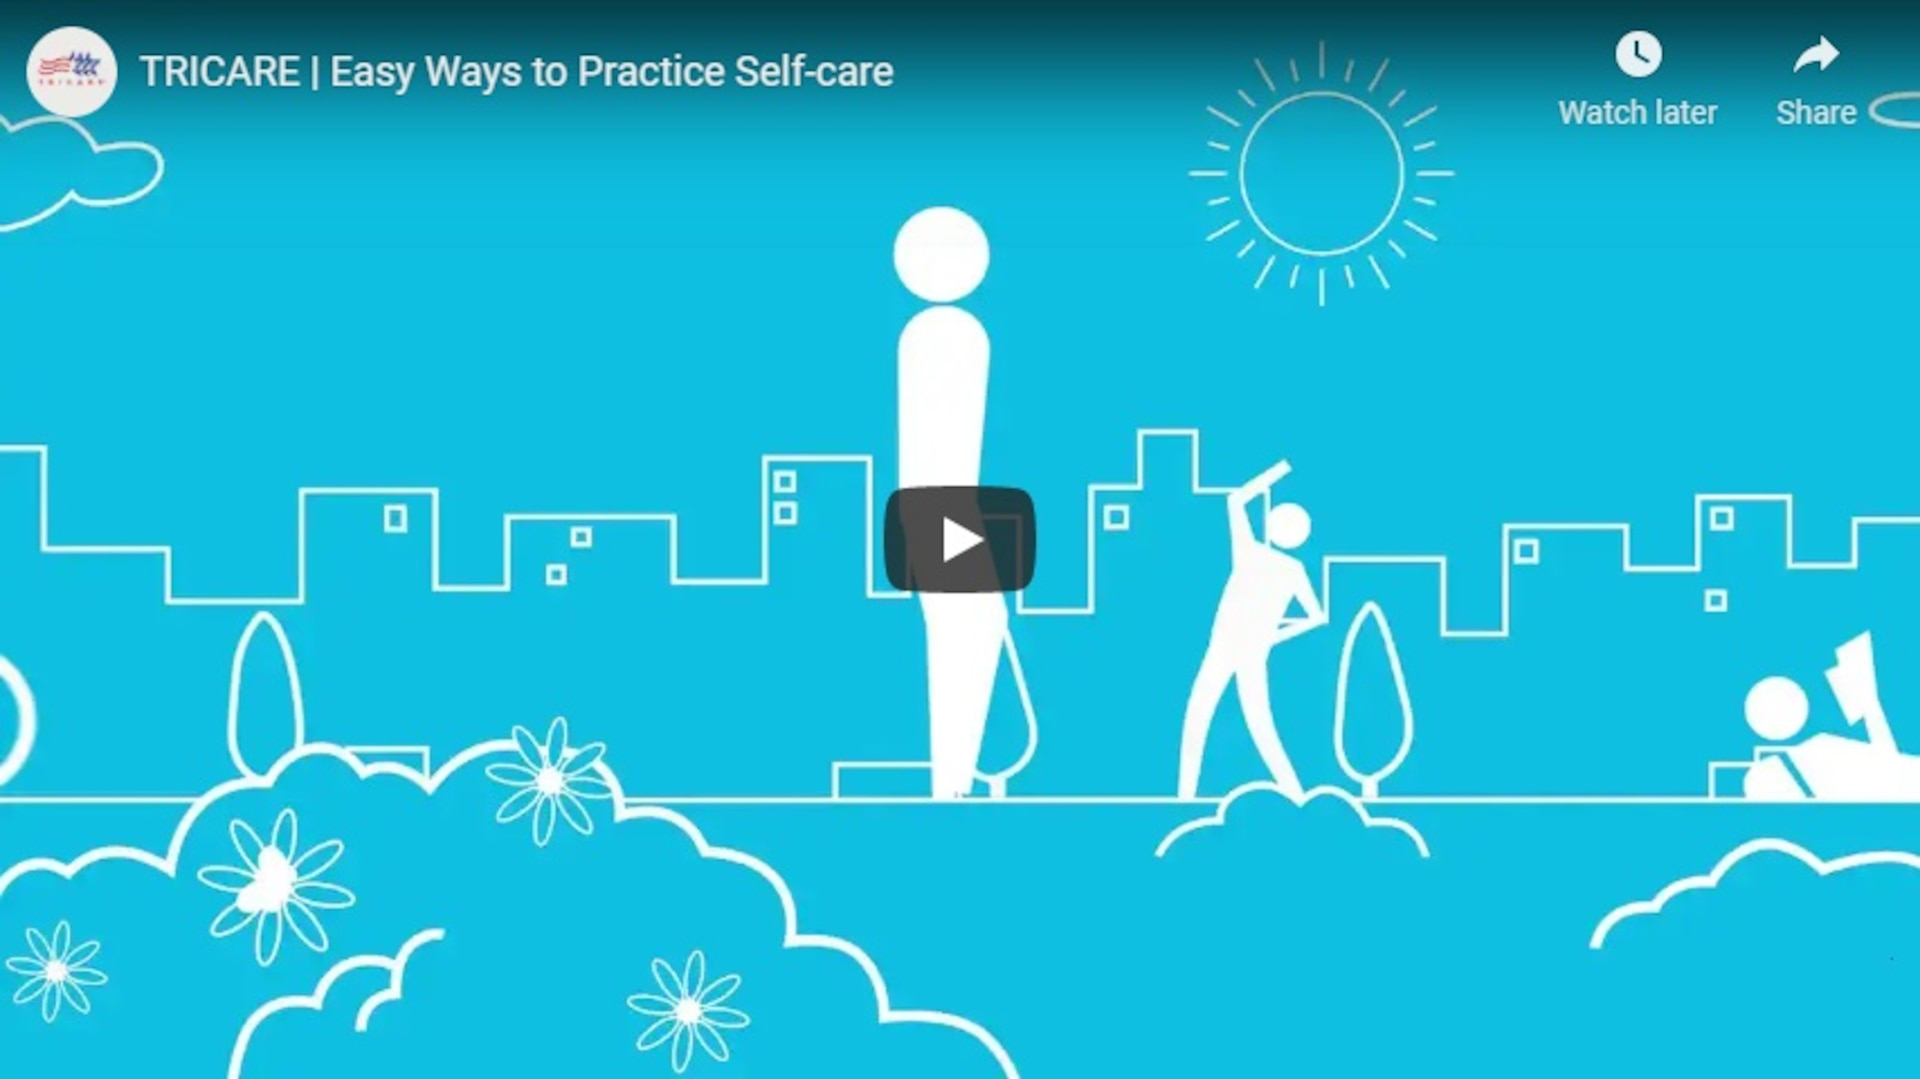 Watch this video to learn more about practicing self-care